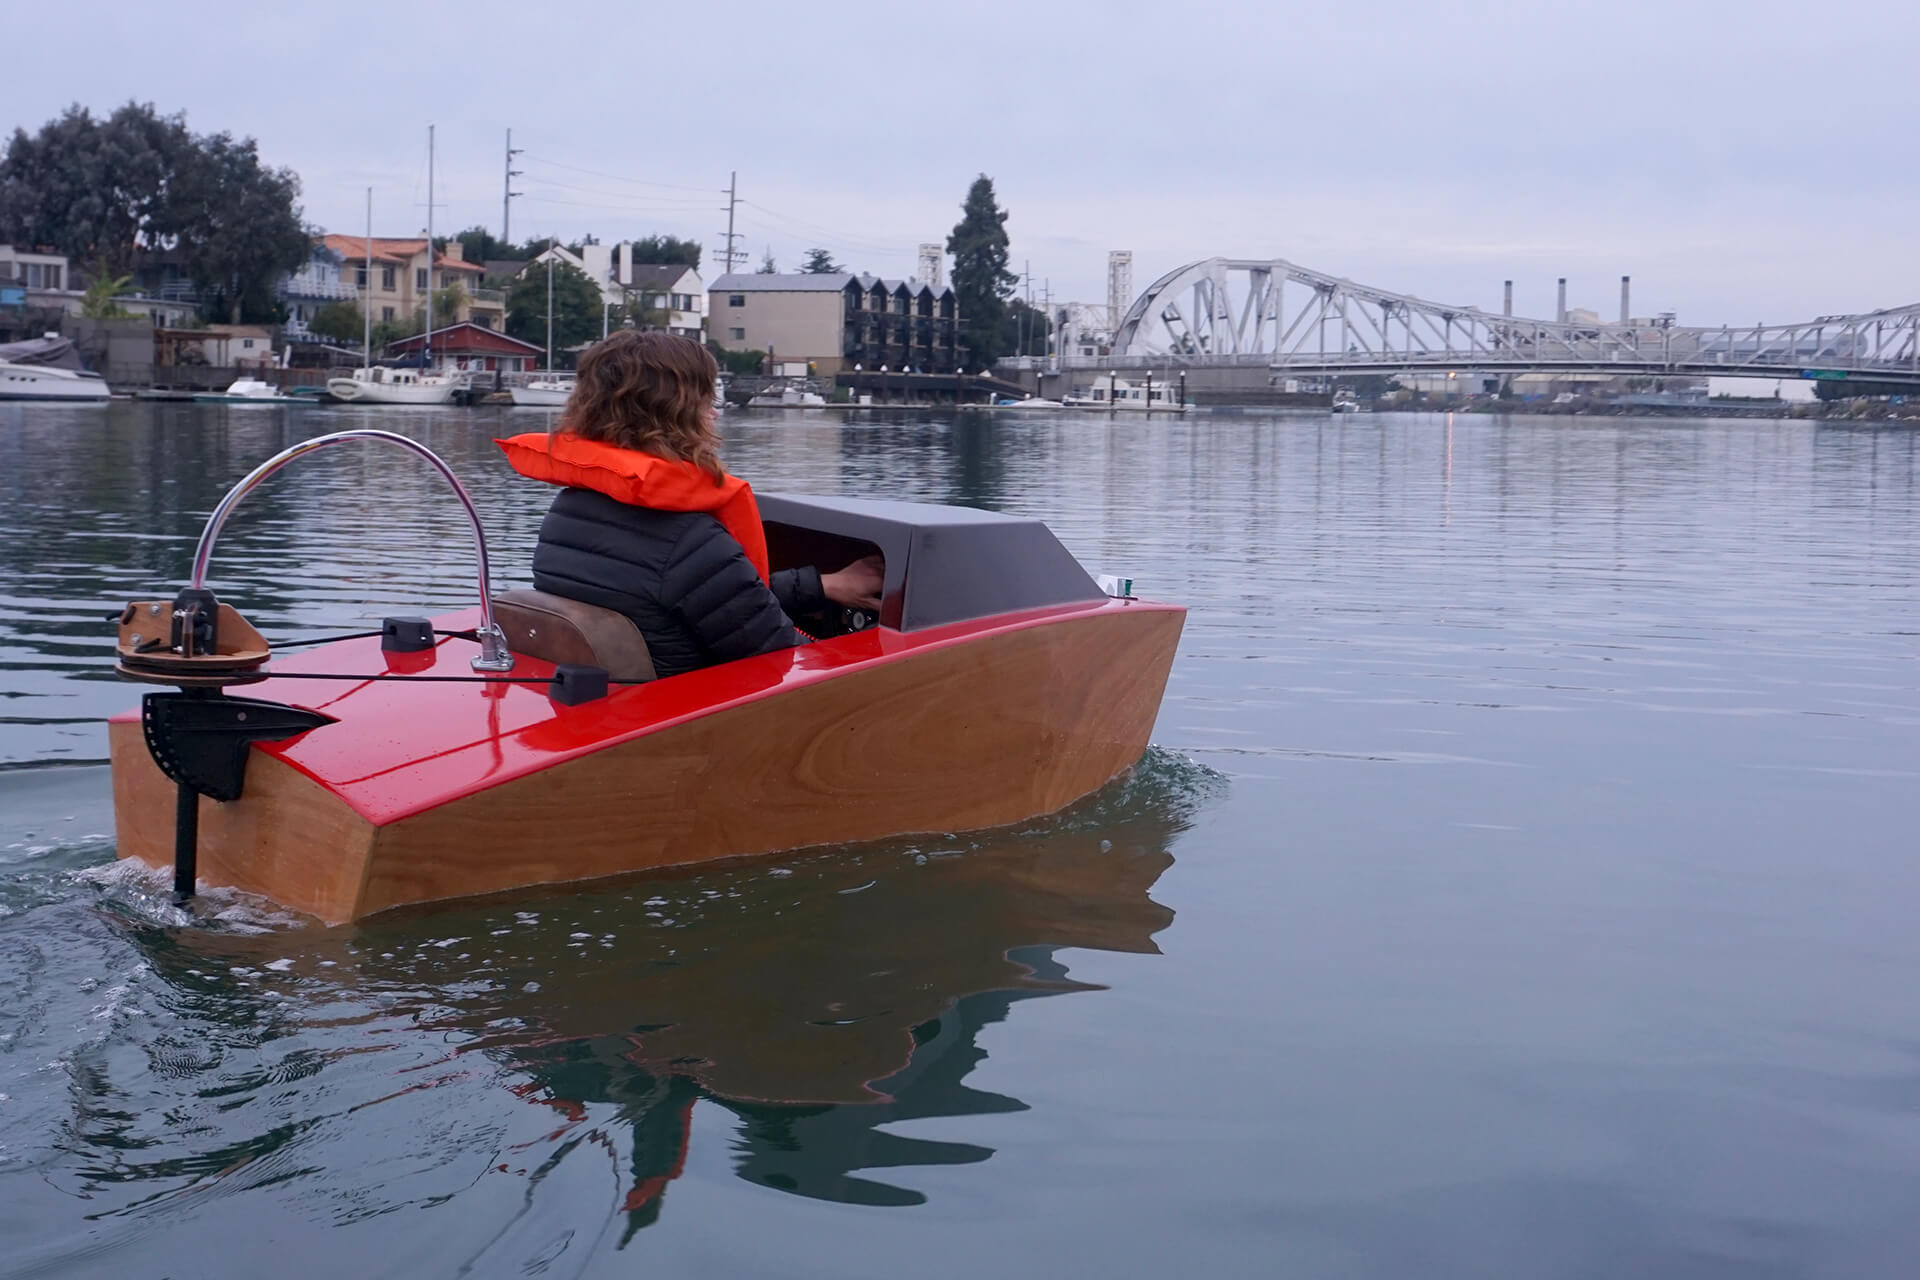 Mini Boat Rapid Whale Shakespeare Trolling Motor Wiring Diagram Erika Riding Towards The Bridge At First Launch Of Electric